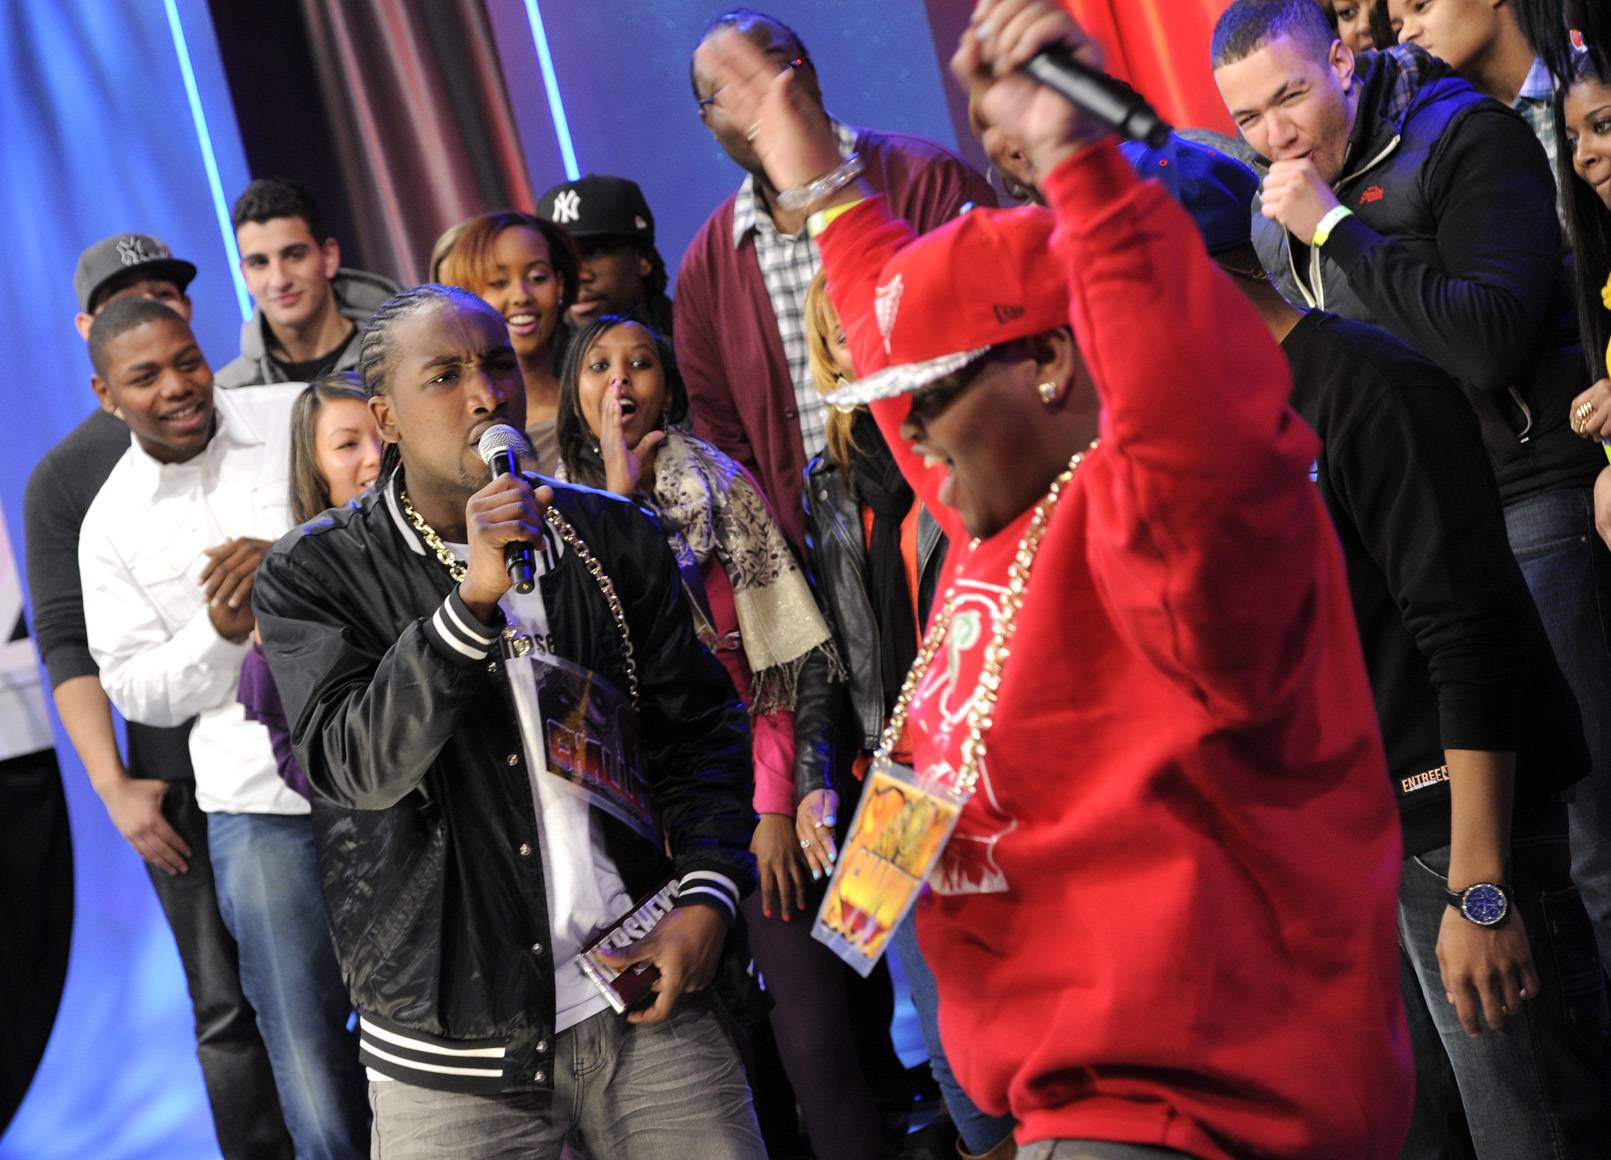 Hands Up - Sensing victory, Relly celebrates as Dolo Chillin delivers his second verse at 106 & Park, January 20, 2012. (Photo: John Ricard / BET)